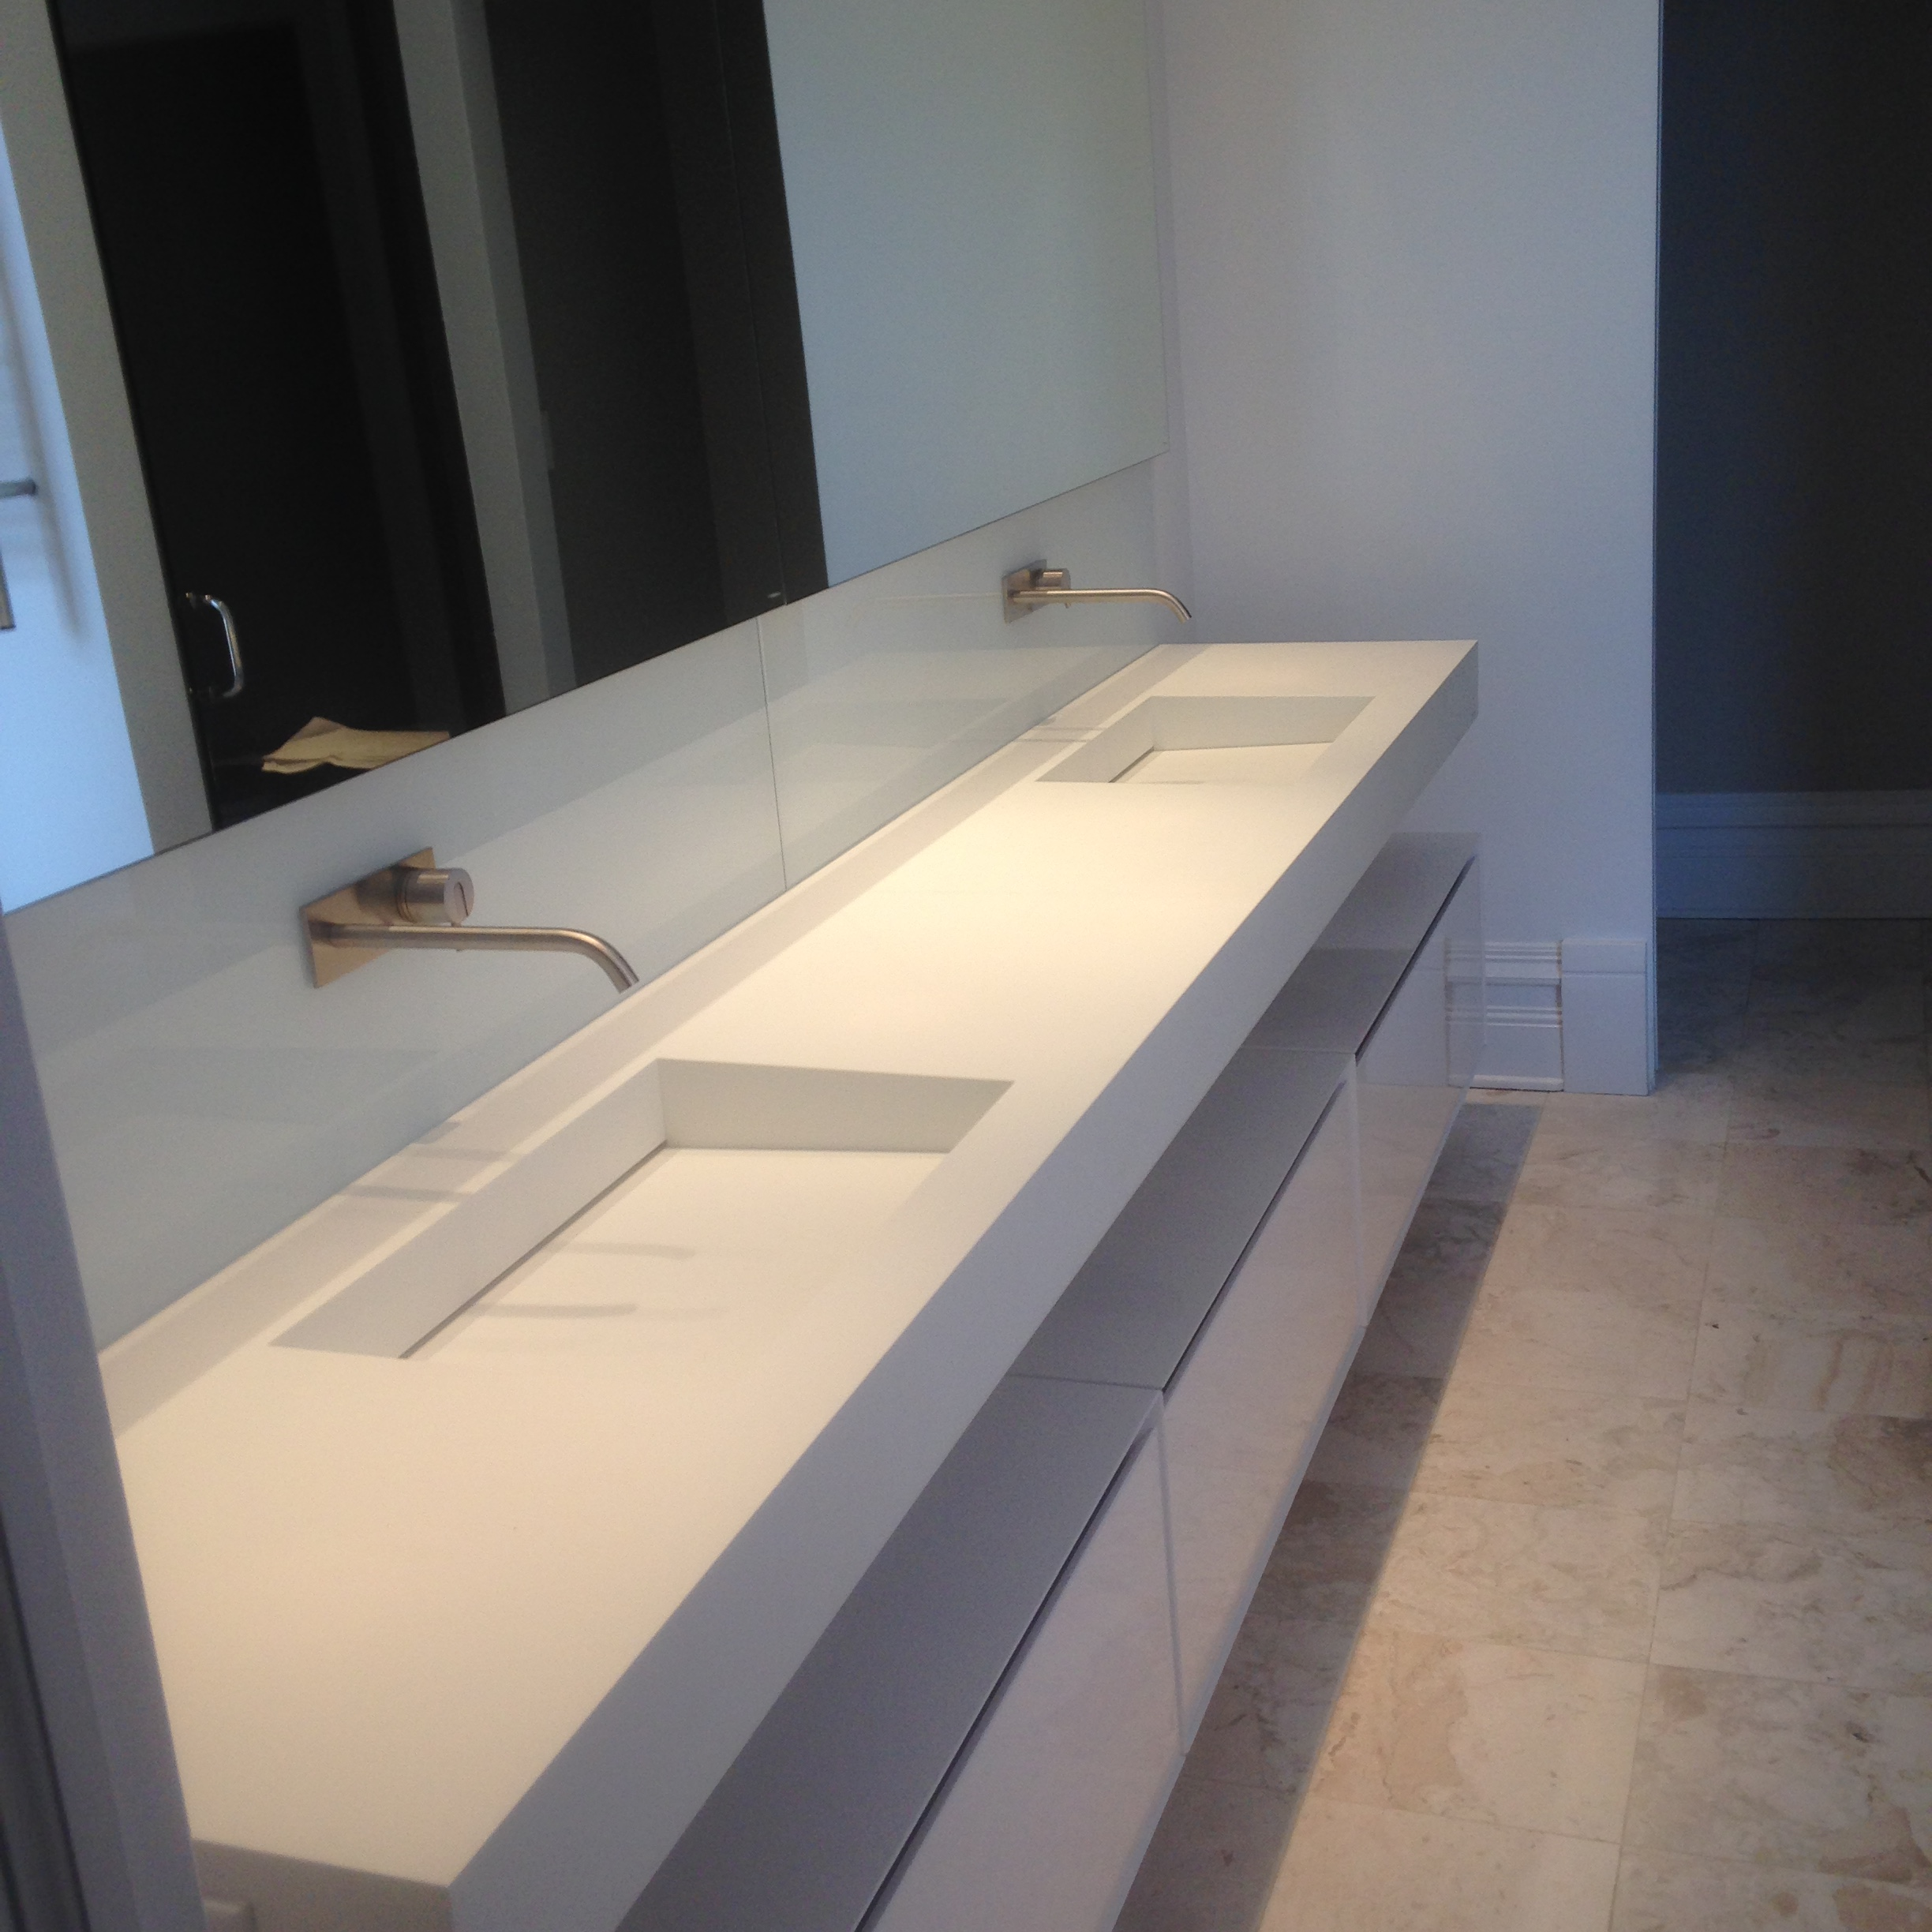 We Fabricate Custom Kitchen Tops And Bathrooms Vanity Tops Or Any Other Tops  Fabrications And Install Them. We Guarantee From The Day We Take Field ...